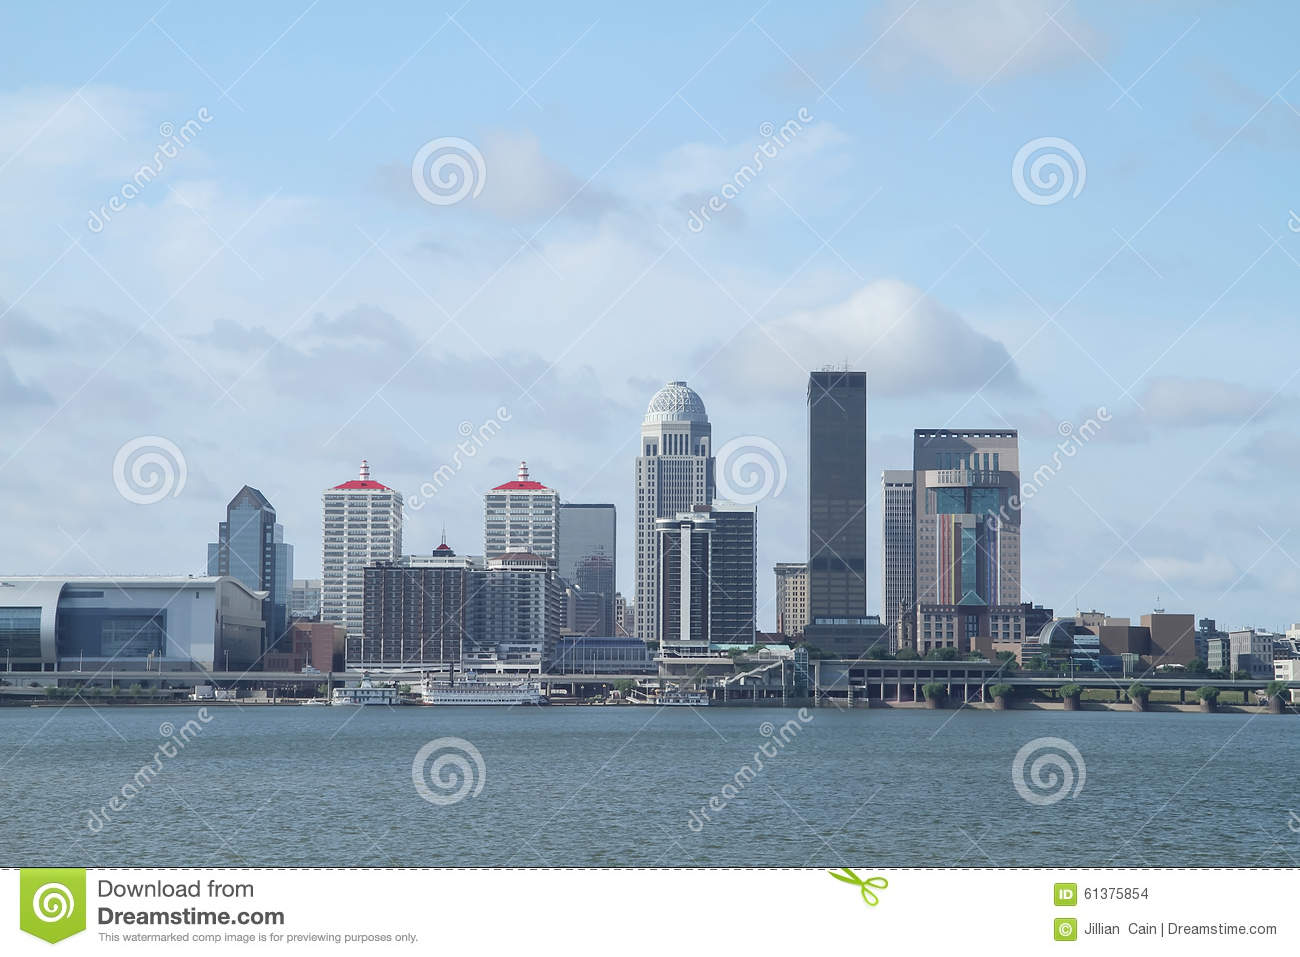 Louisville Kentucky daytime skyline as seen from across the Ohio River